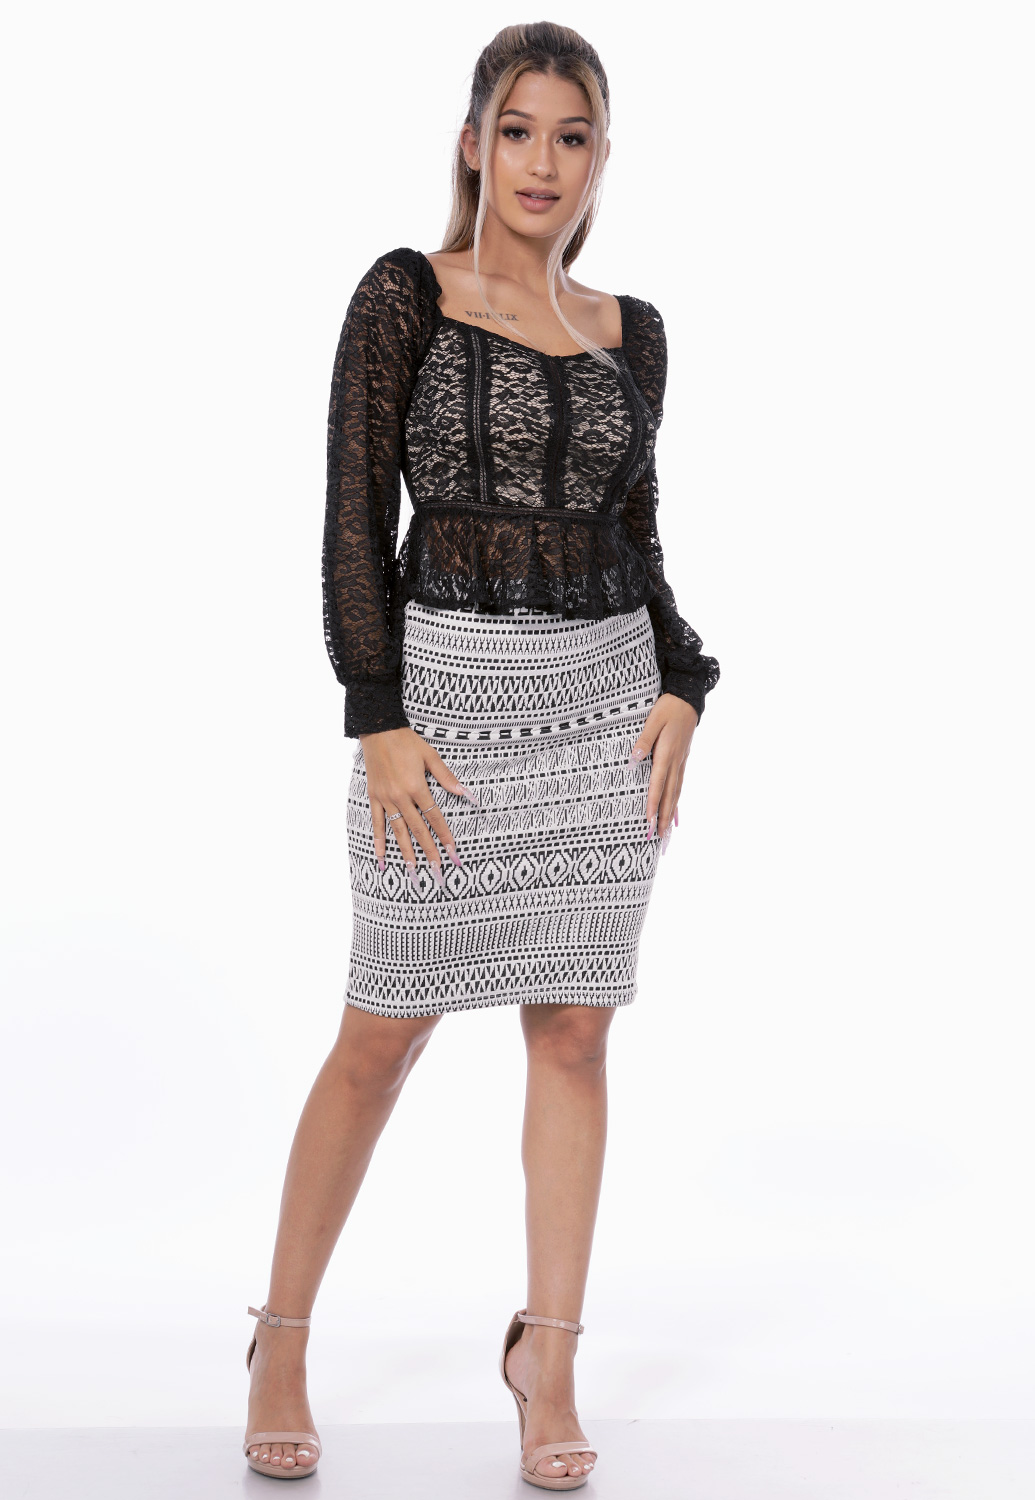 Lace Long Sleeve Dressy Top